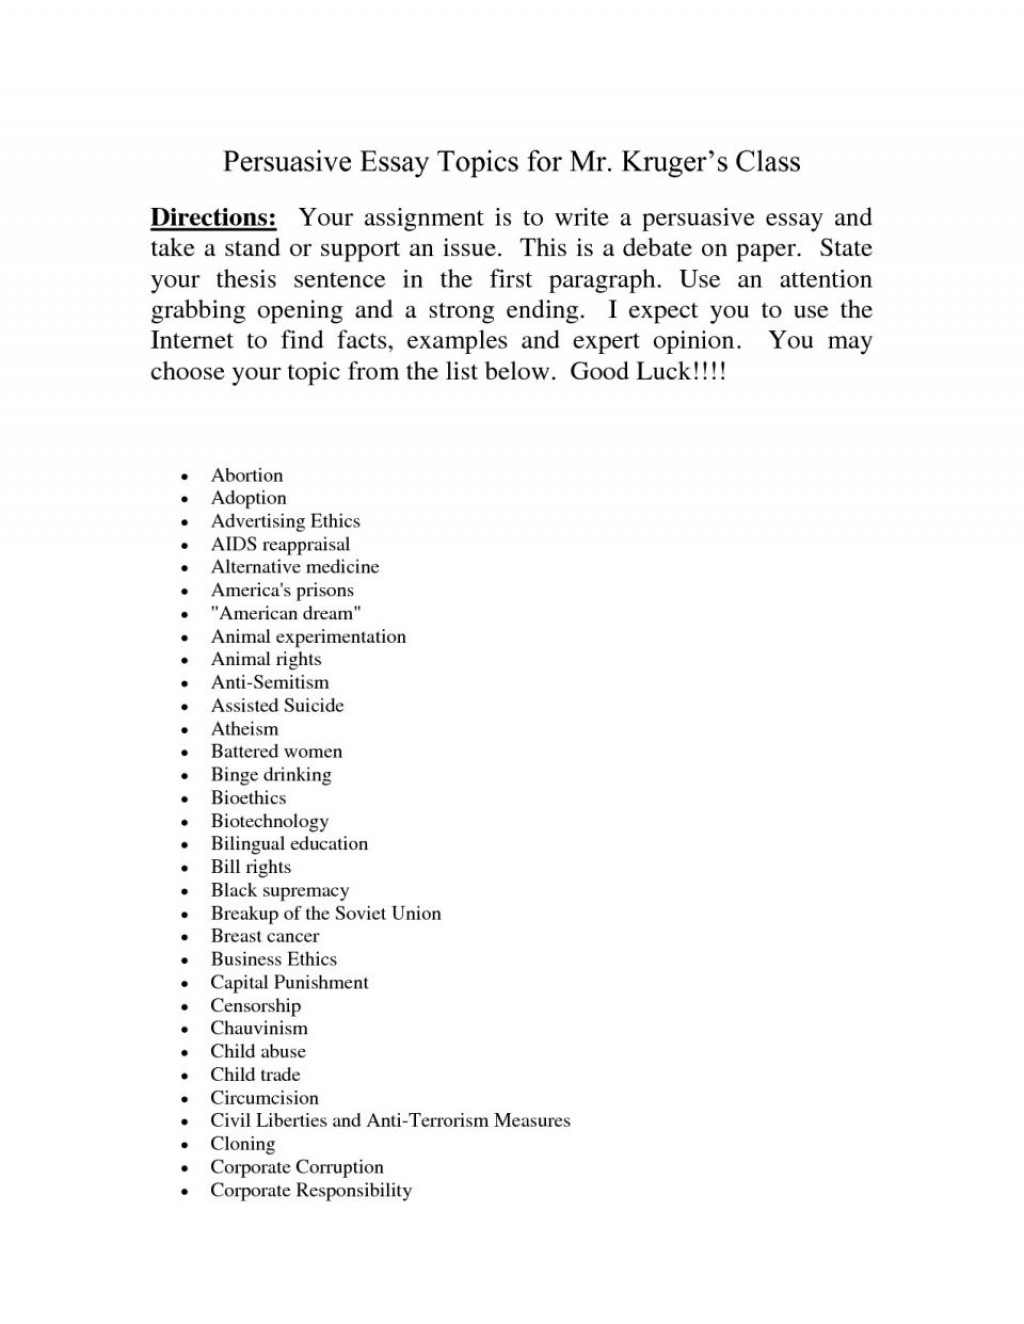 001 Research Paper Topics Topic For Essay Barca Fontanacountryinn Within Good Persuasive Narrative To Write Abo Easy About Personal Descriptive Informative Formidable 2017 College In Computer Science Large